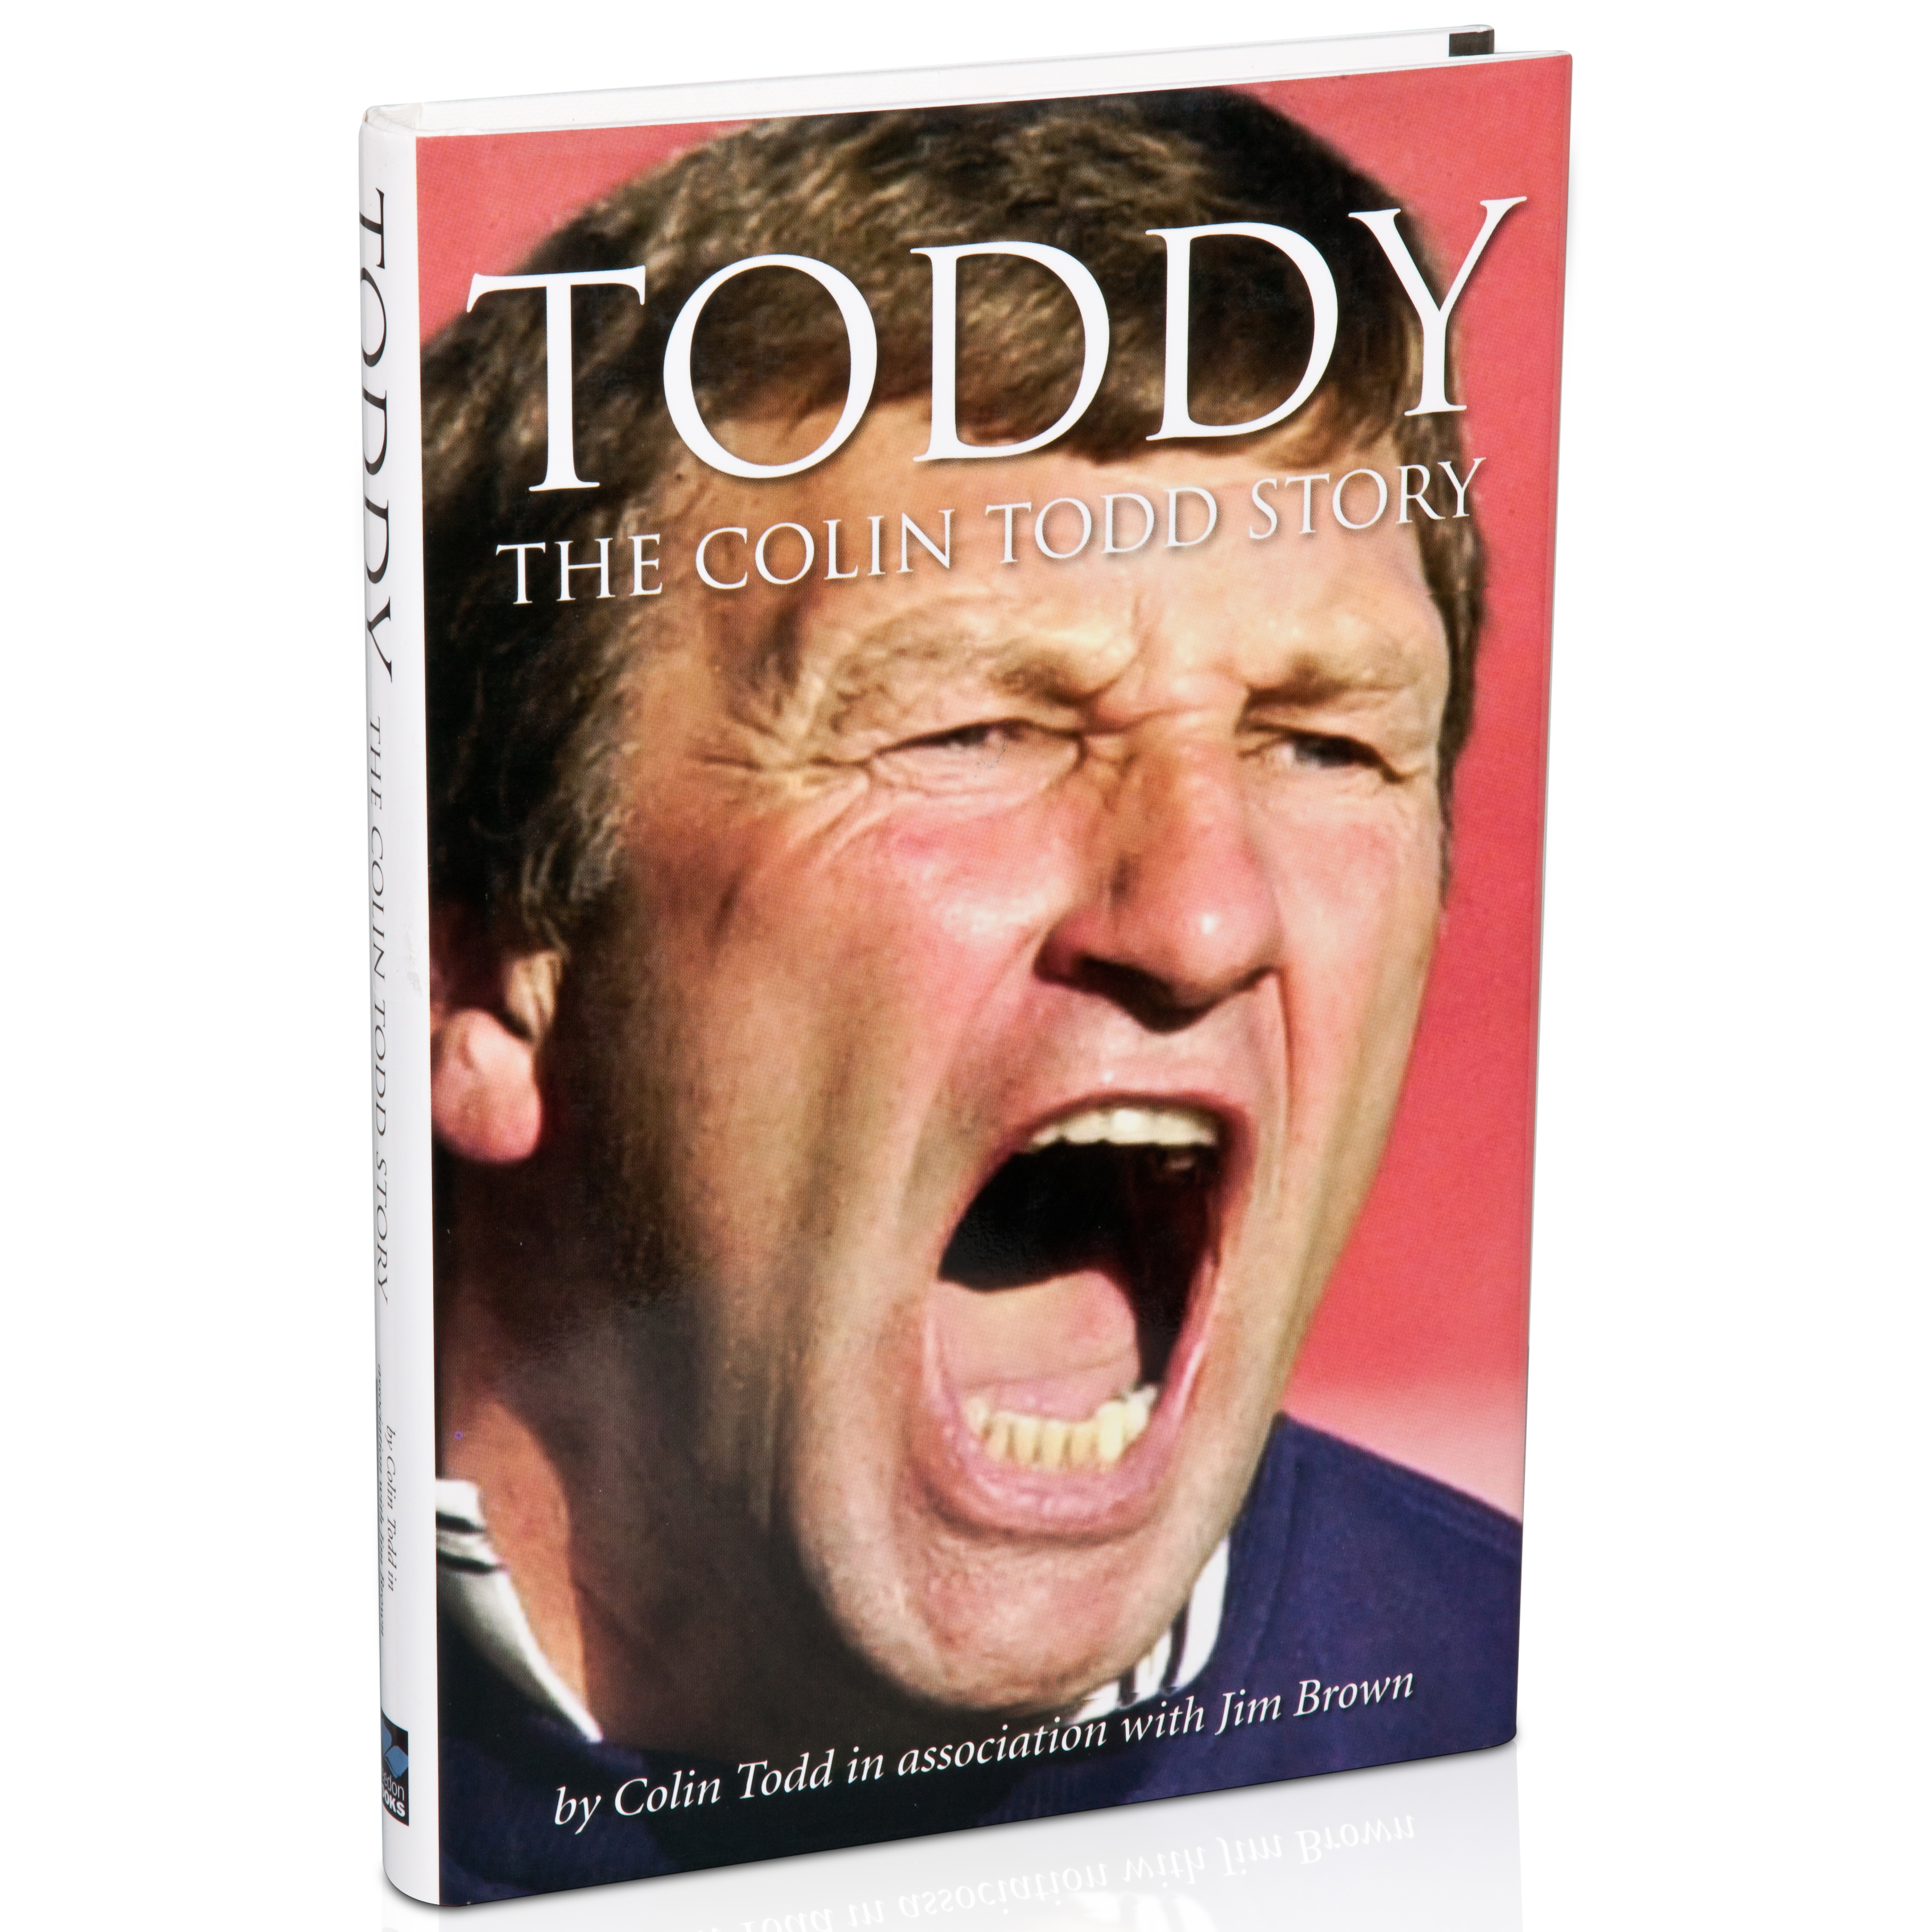 Sunderland Toddy - The Colin Todd Story Book